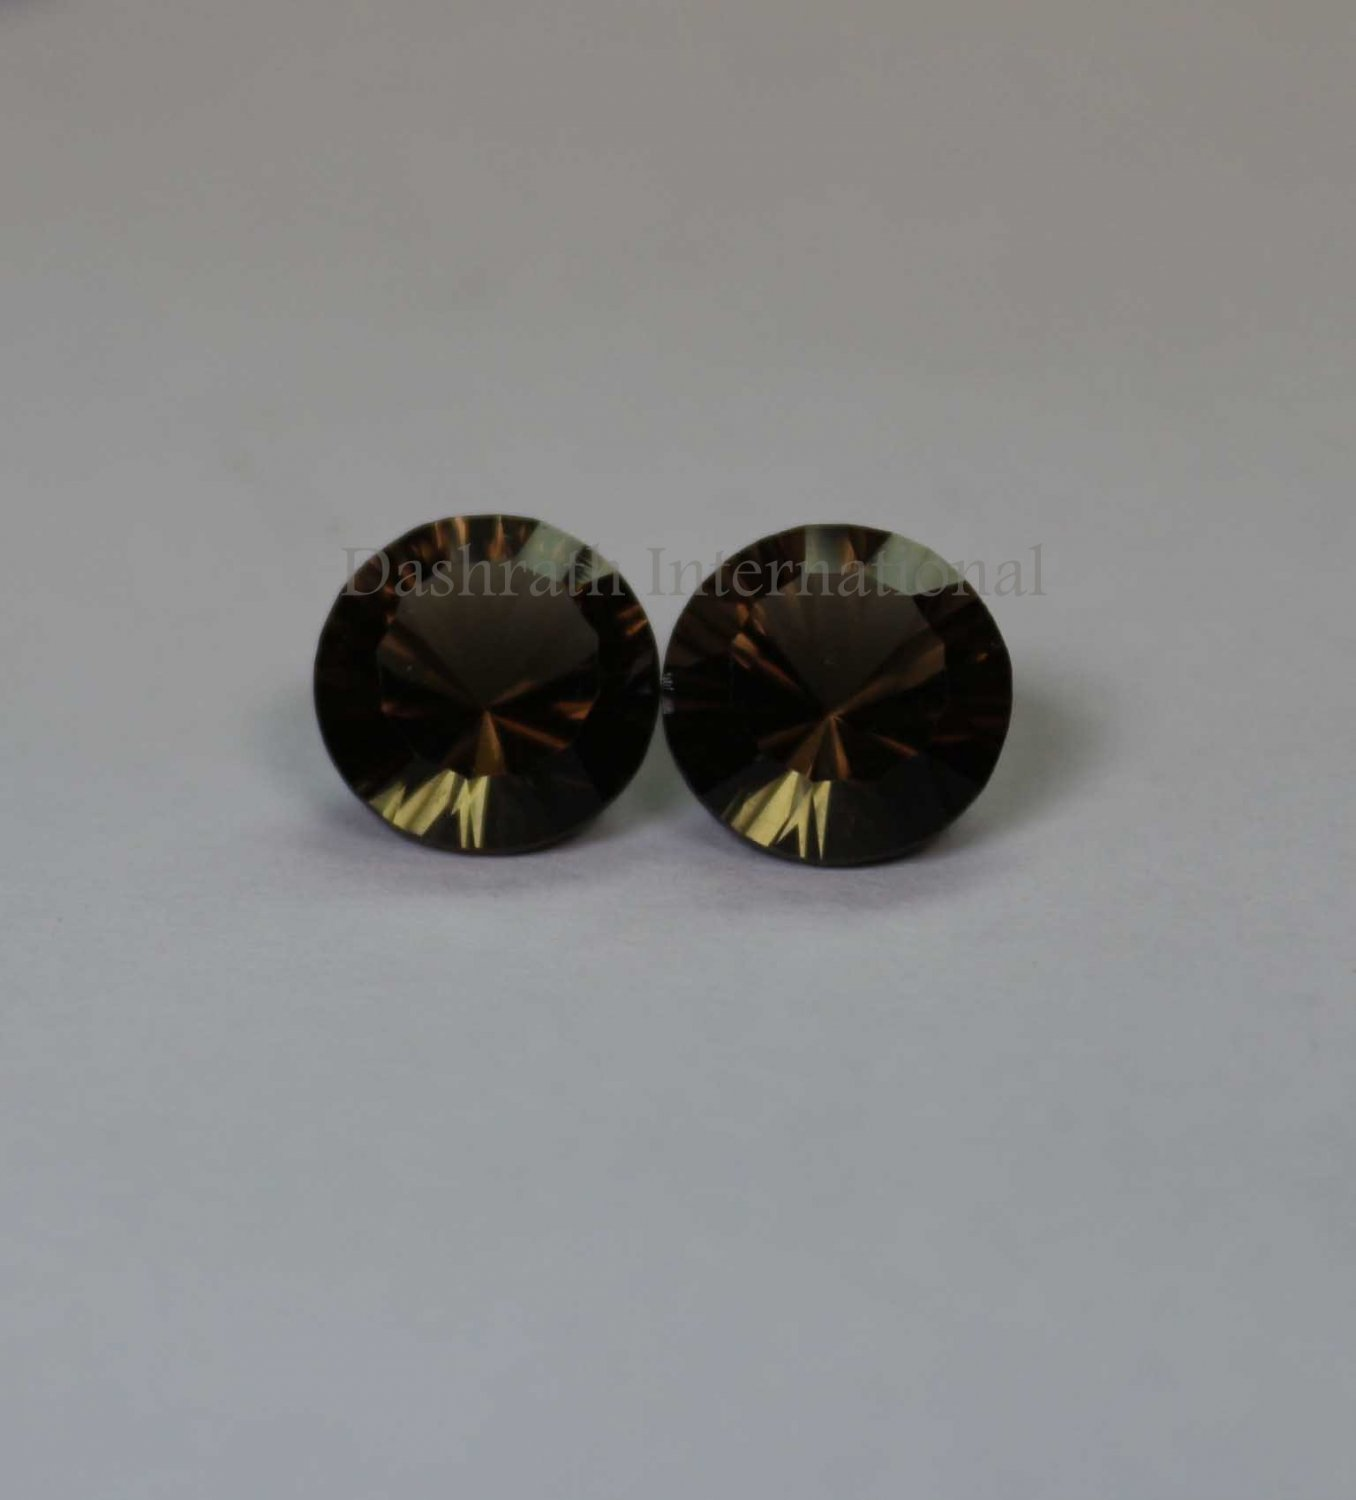 16mmNatural Smoky Quartz Concave Cut Round 2 Piece (1 Pair )   (SI) Top Quality  Loose Gemstone